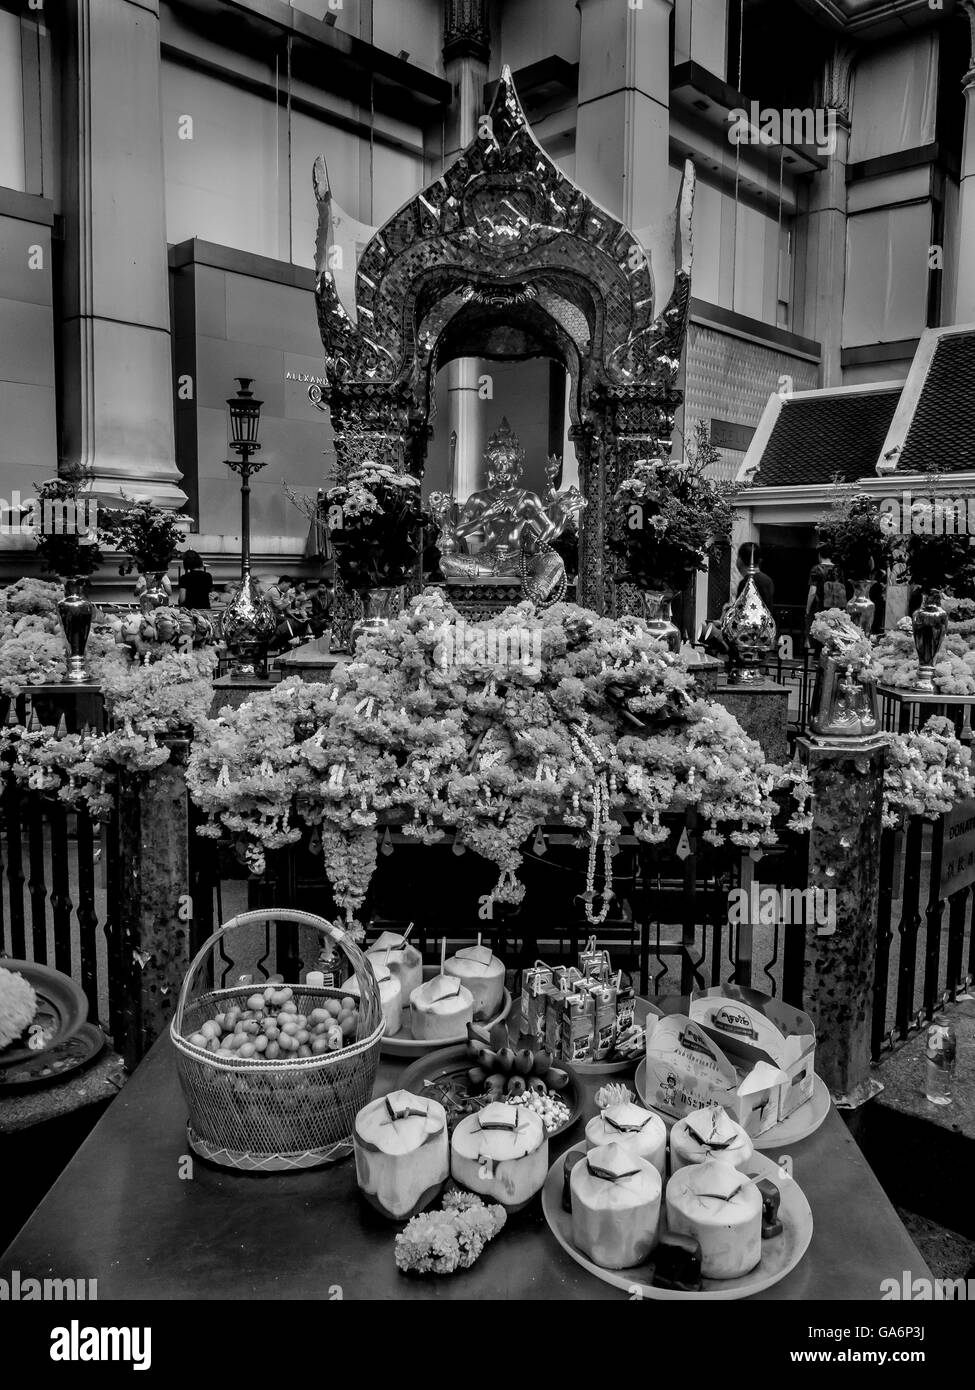 Erawan Shrine and offerings following terrorist bomb - Stock Image